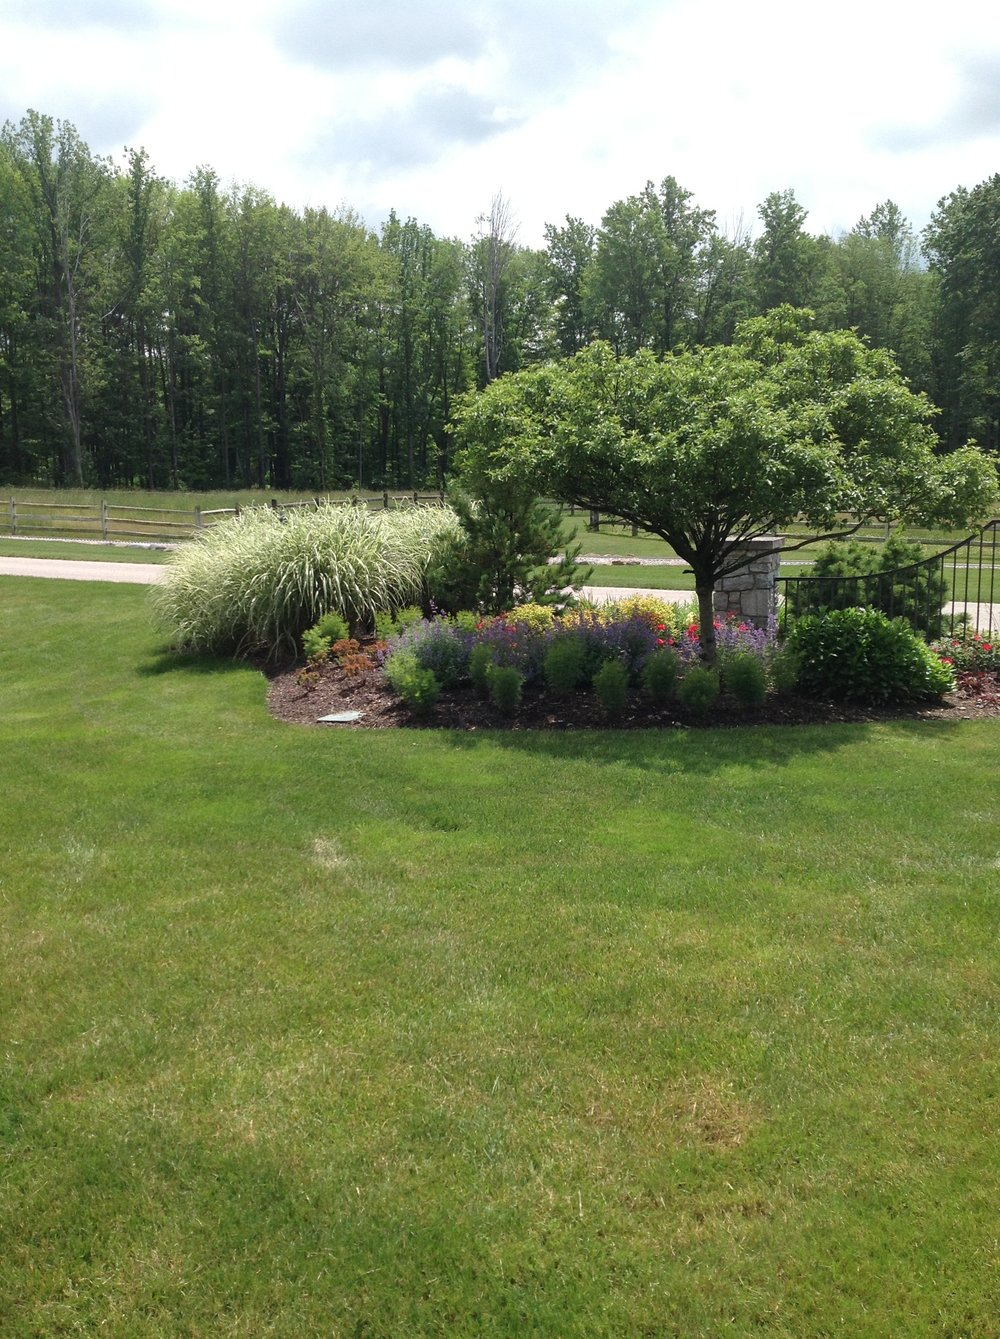 Unilock landscaping companies with top lawn fertilzer in Hudson, OH